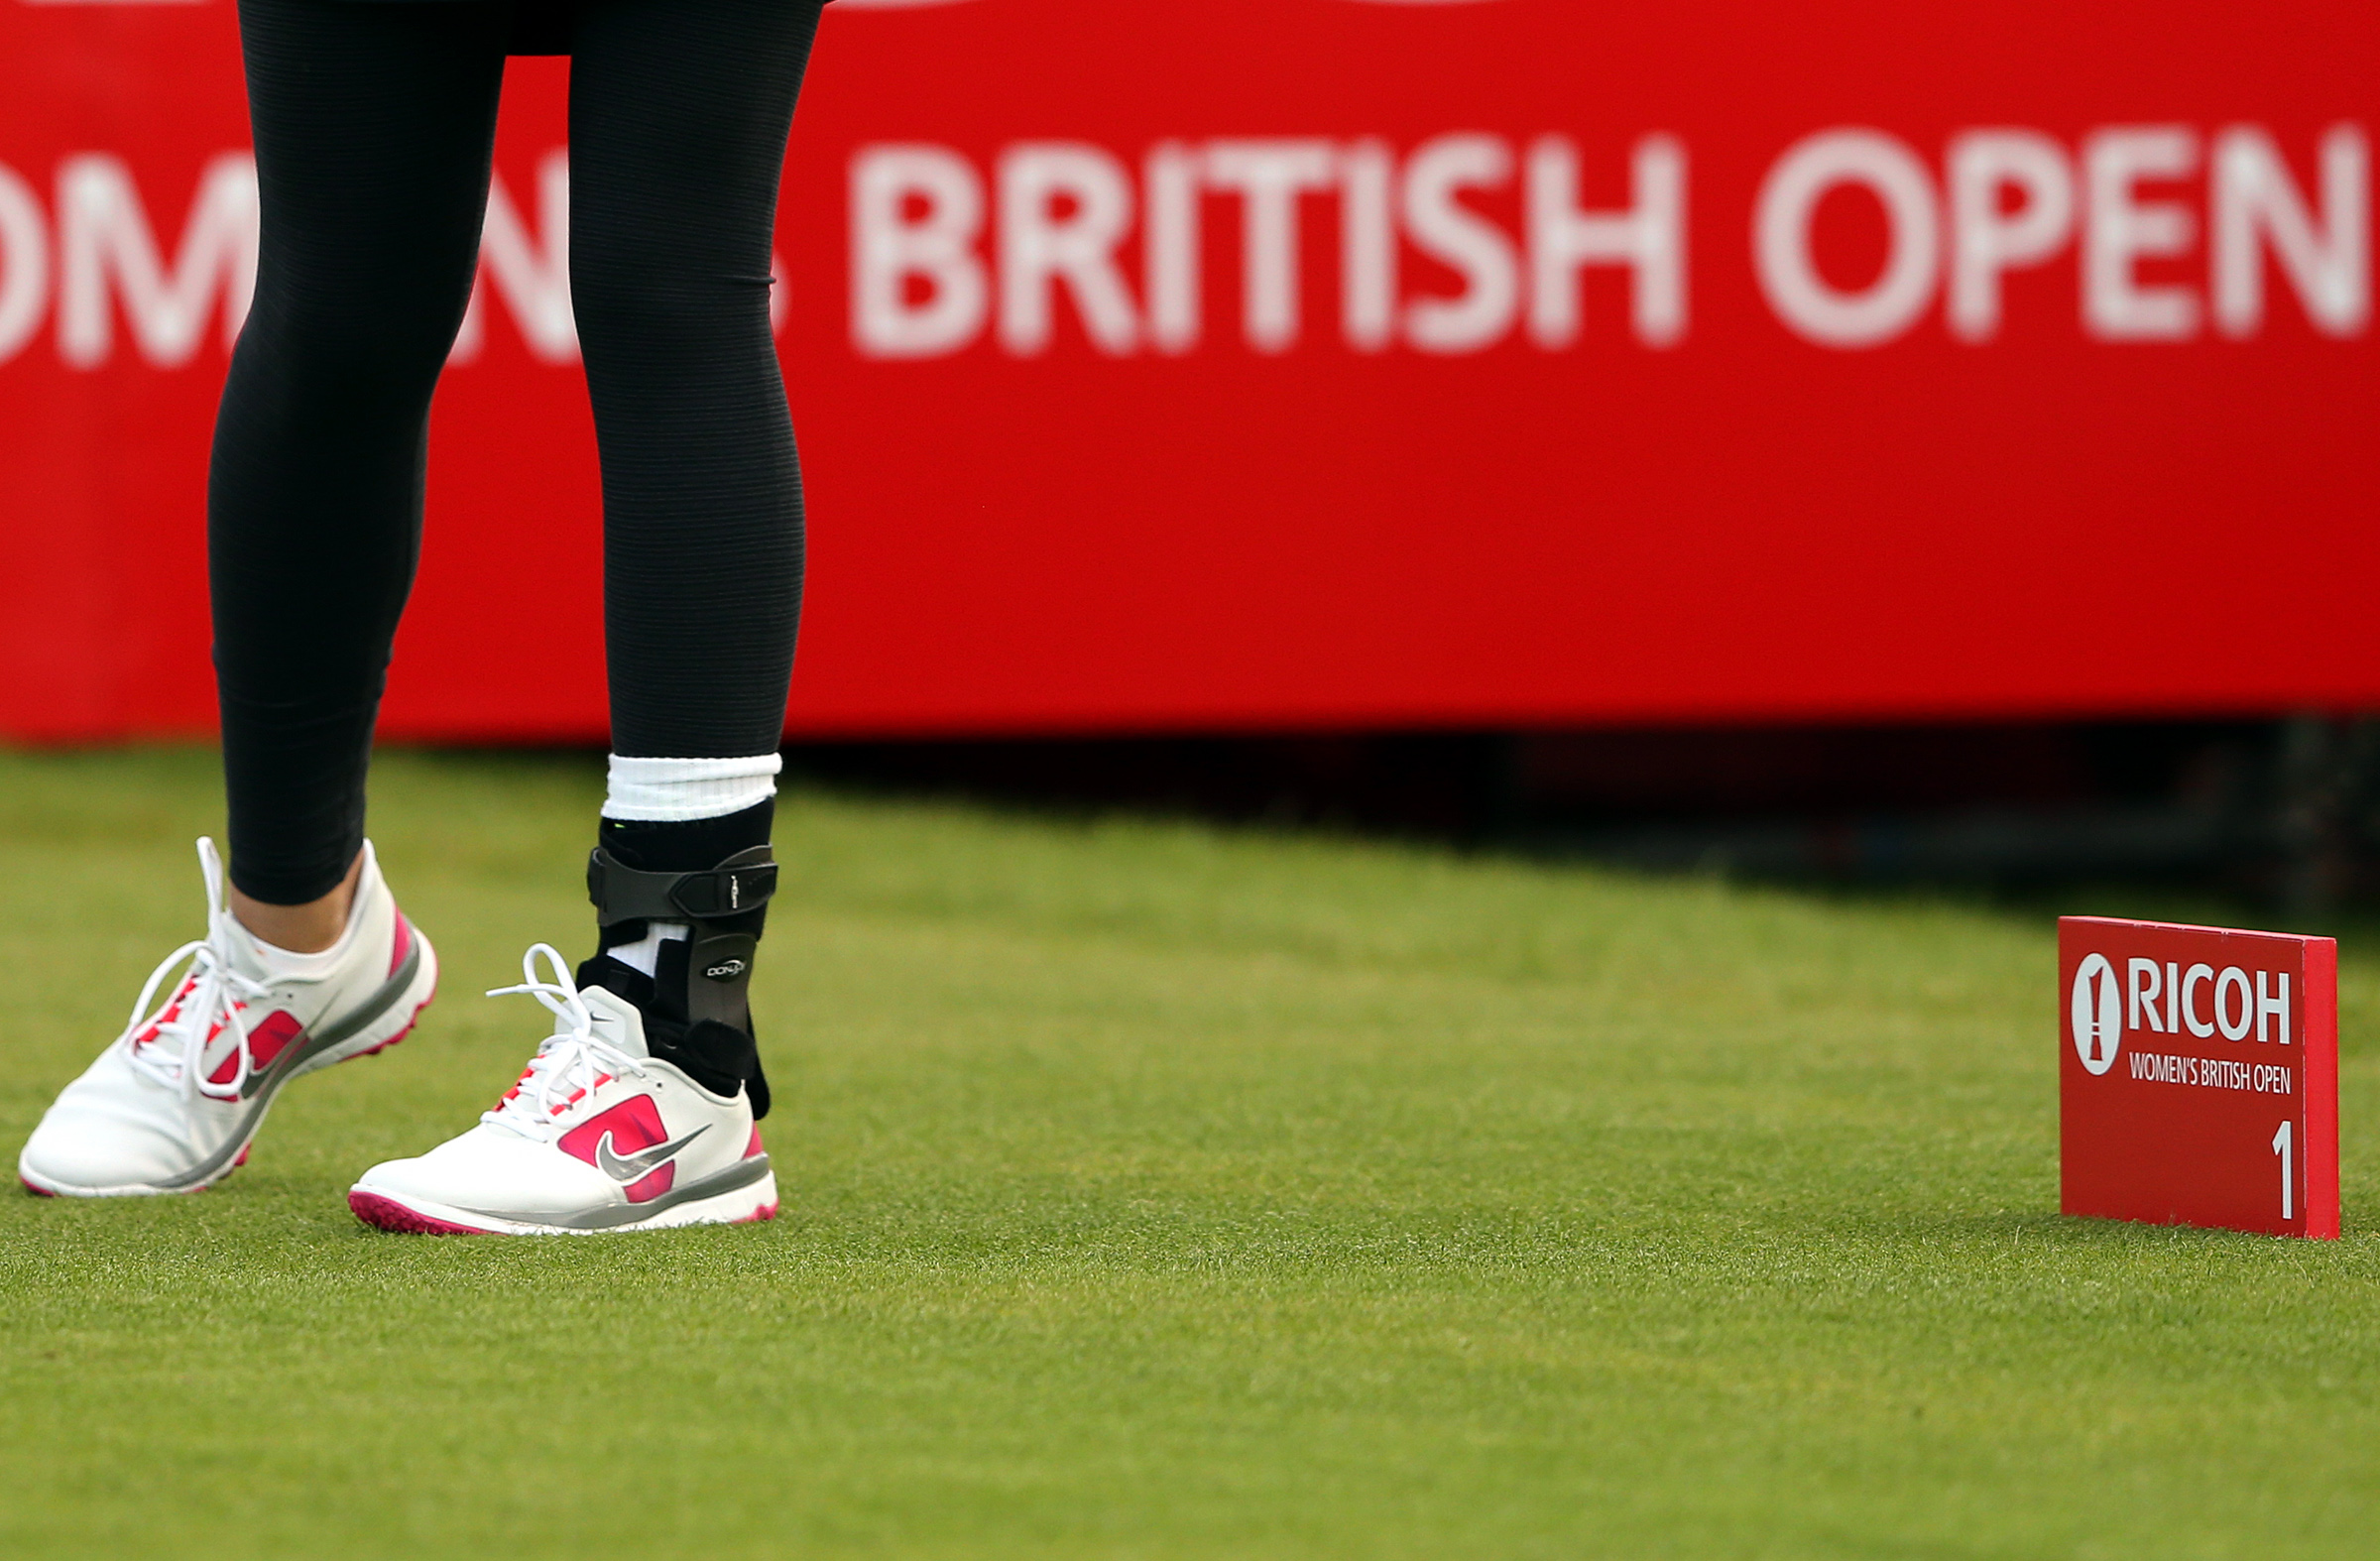 Michelle Wie of the U.S. is seen wearing a ankle brace as she tees off from the first hole during the first day of the Women's British Open golf championship on the Turnberry golf course in Turnberry, Scotland, Thursday, July 30, 2015. (AP Photo/Scott Hep